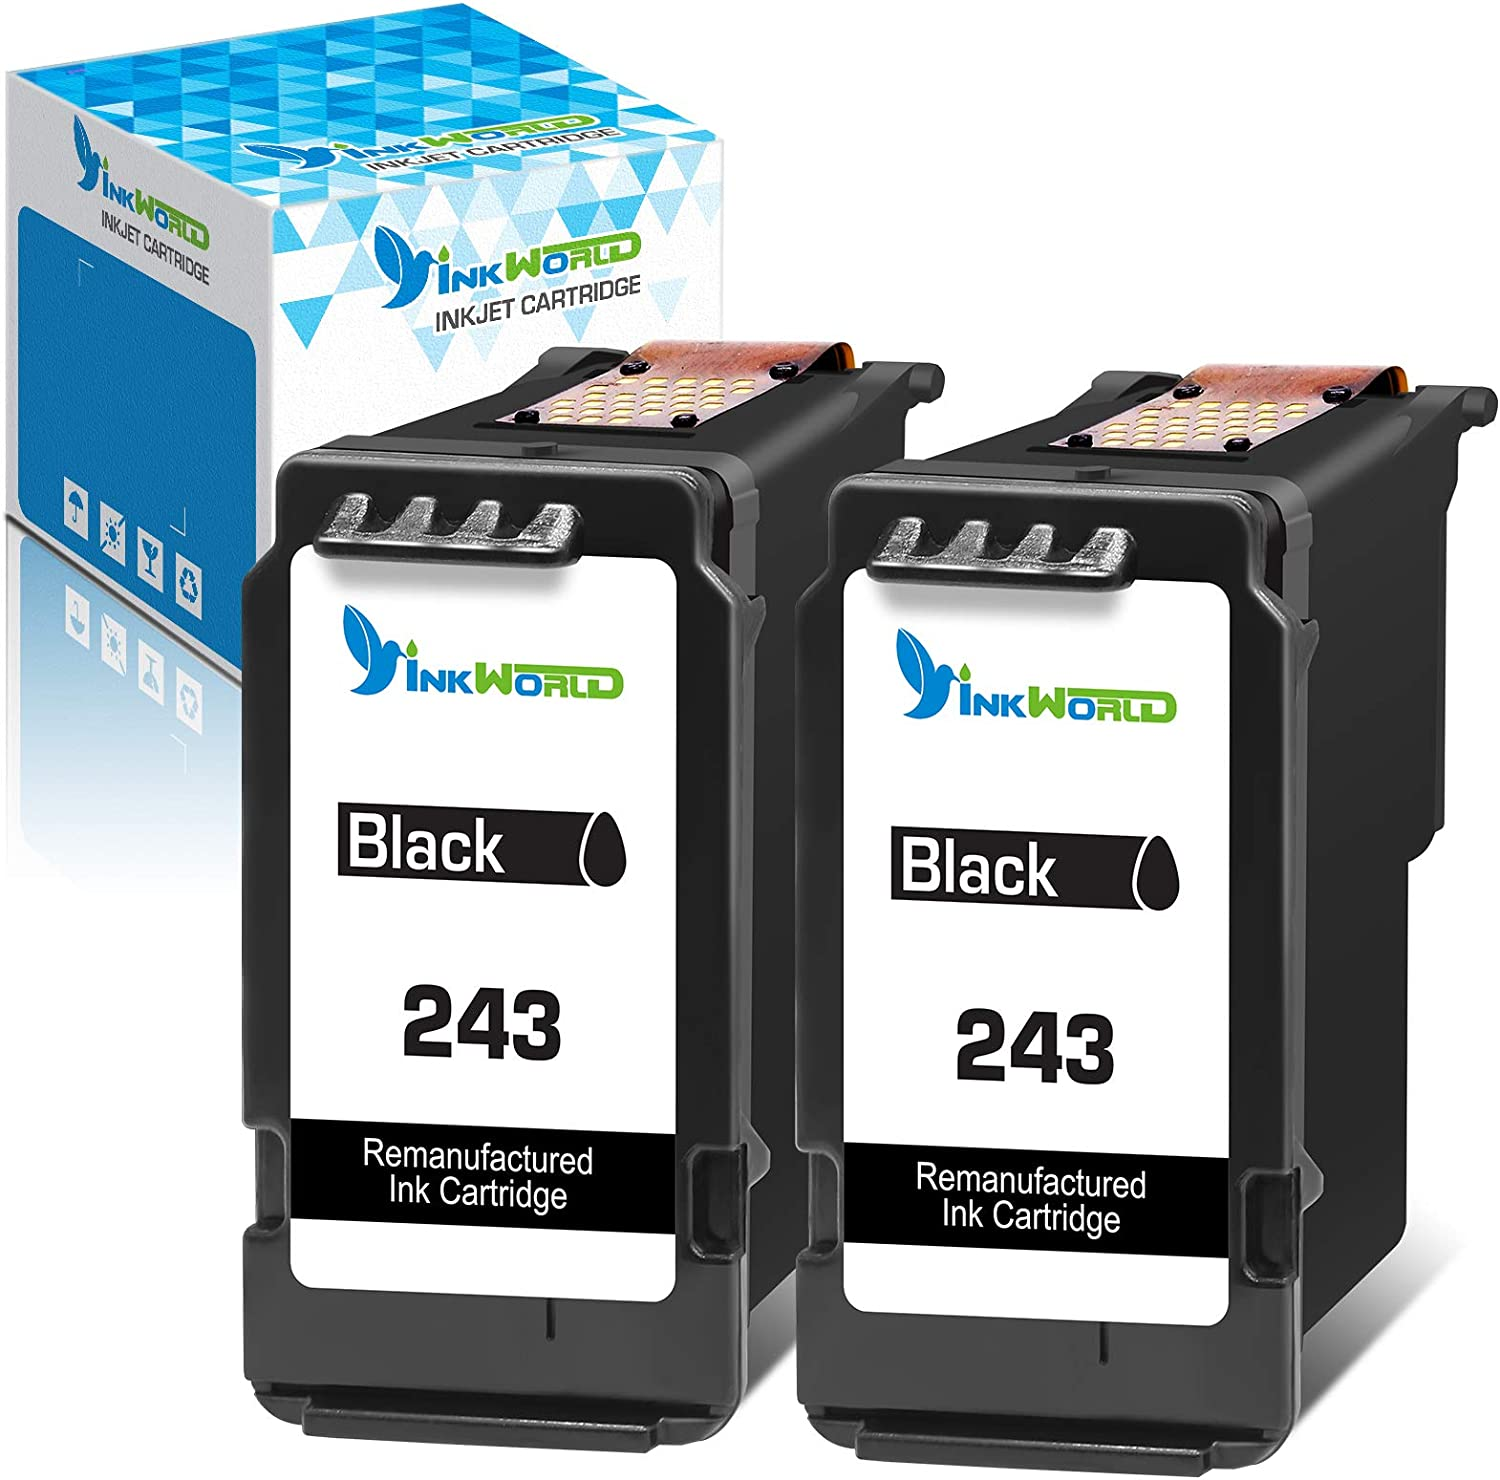 InkWorld Remanufactured Kansas shop City Mall 243 Ink Replacement Canon for Cartridge